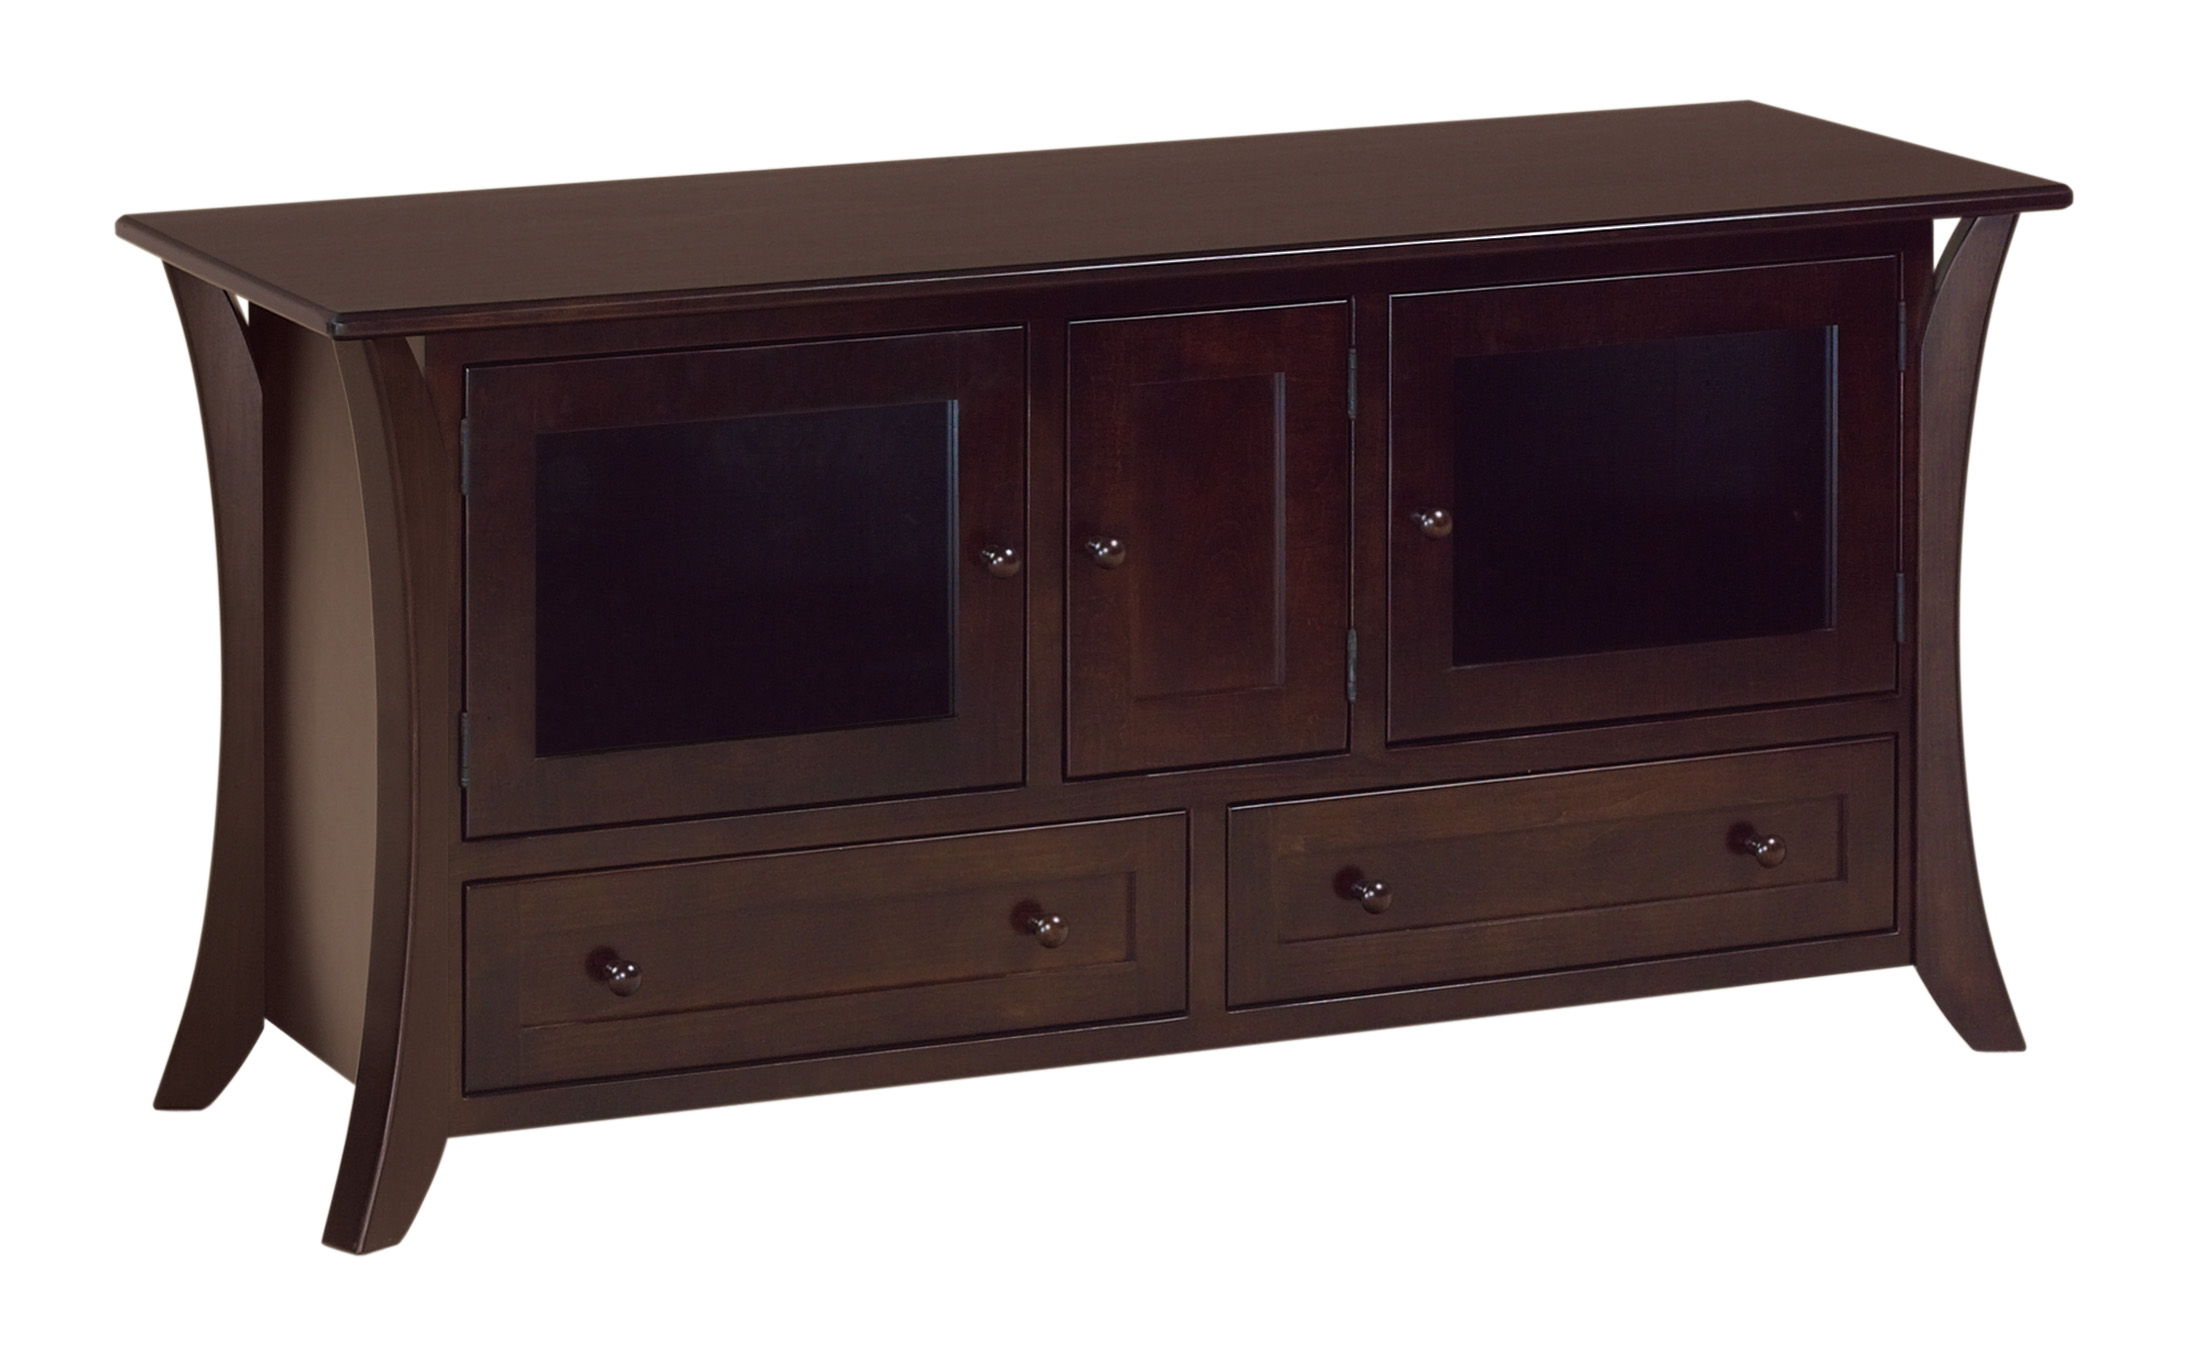 Caledonia TV Stands